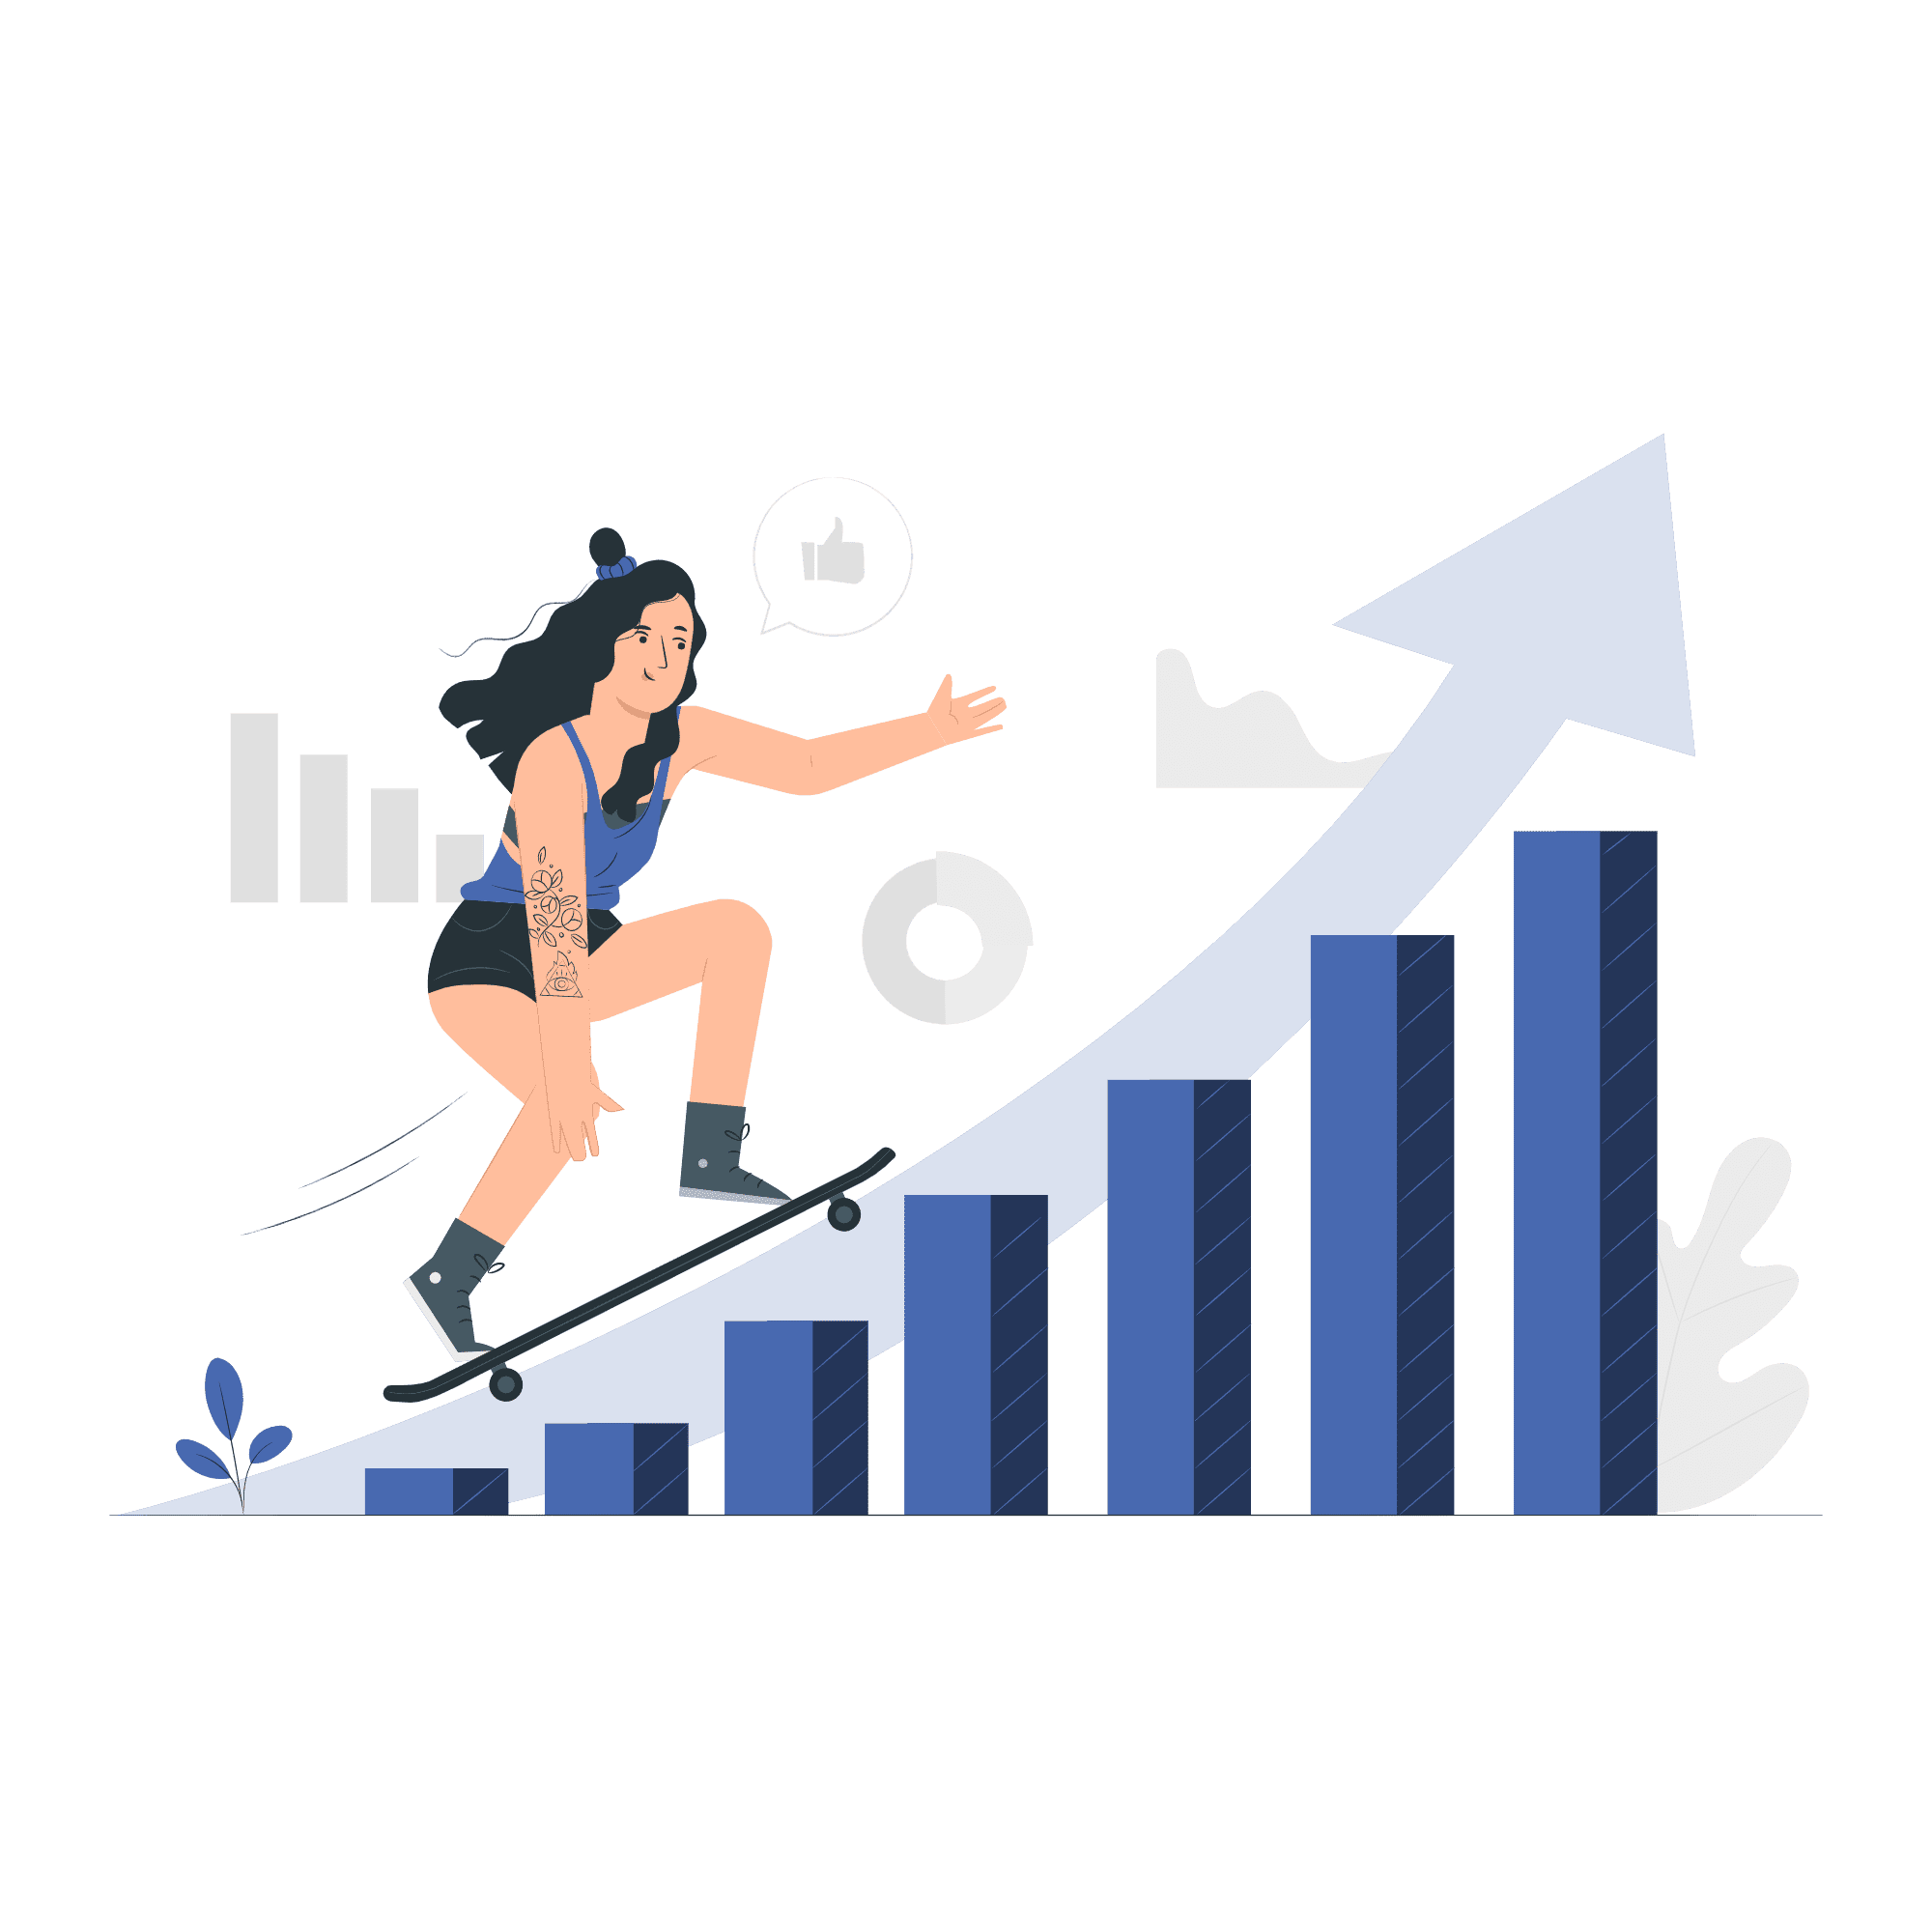 Business Growth Vector Illustration